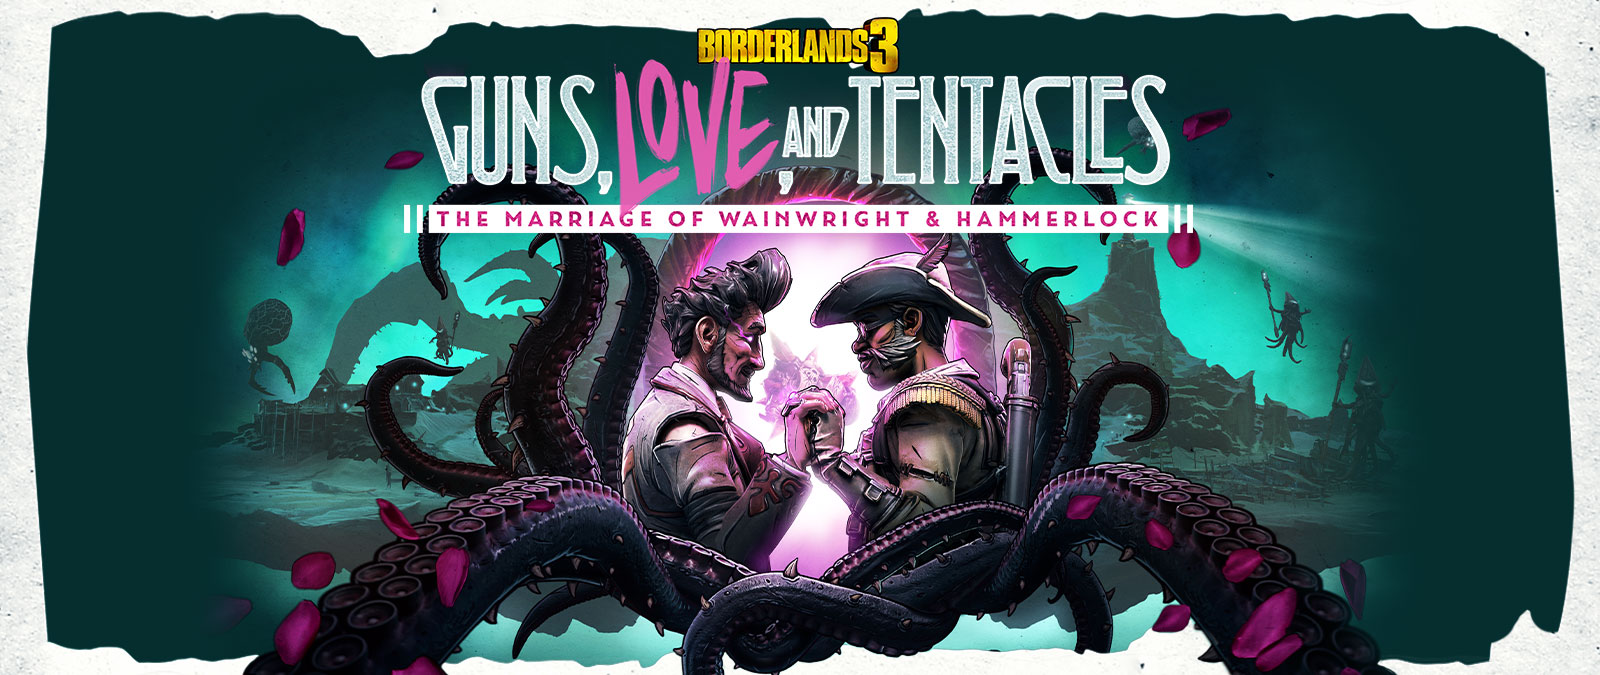 Borderlands 3, Guns, Love and Tentacles, The marriage of Wainwright and Hammerlock, Wainwright and Hammerlock hold hands in a pool of bright light.